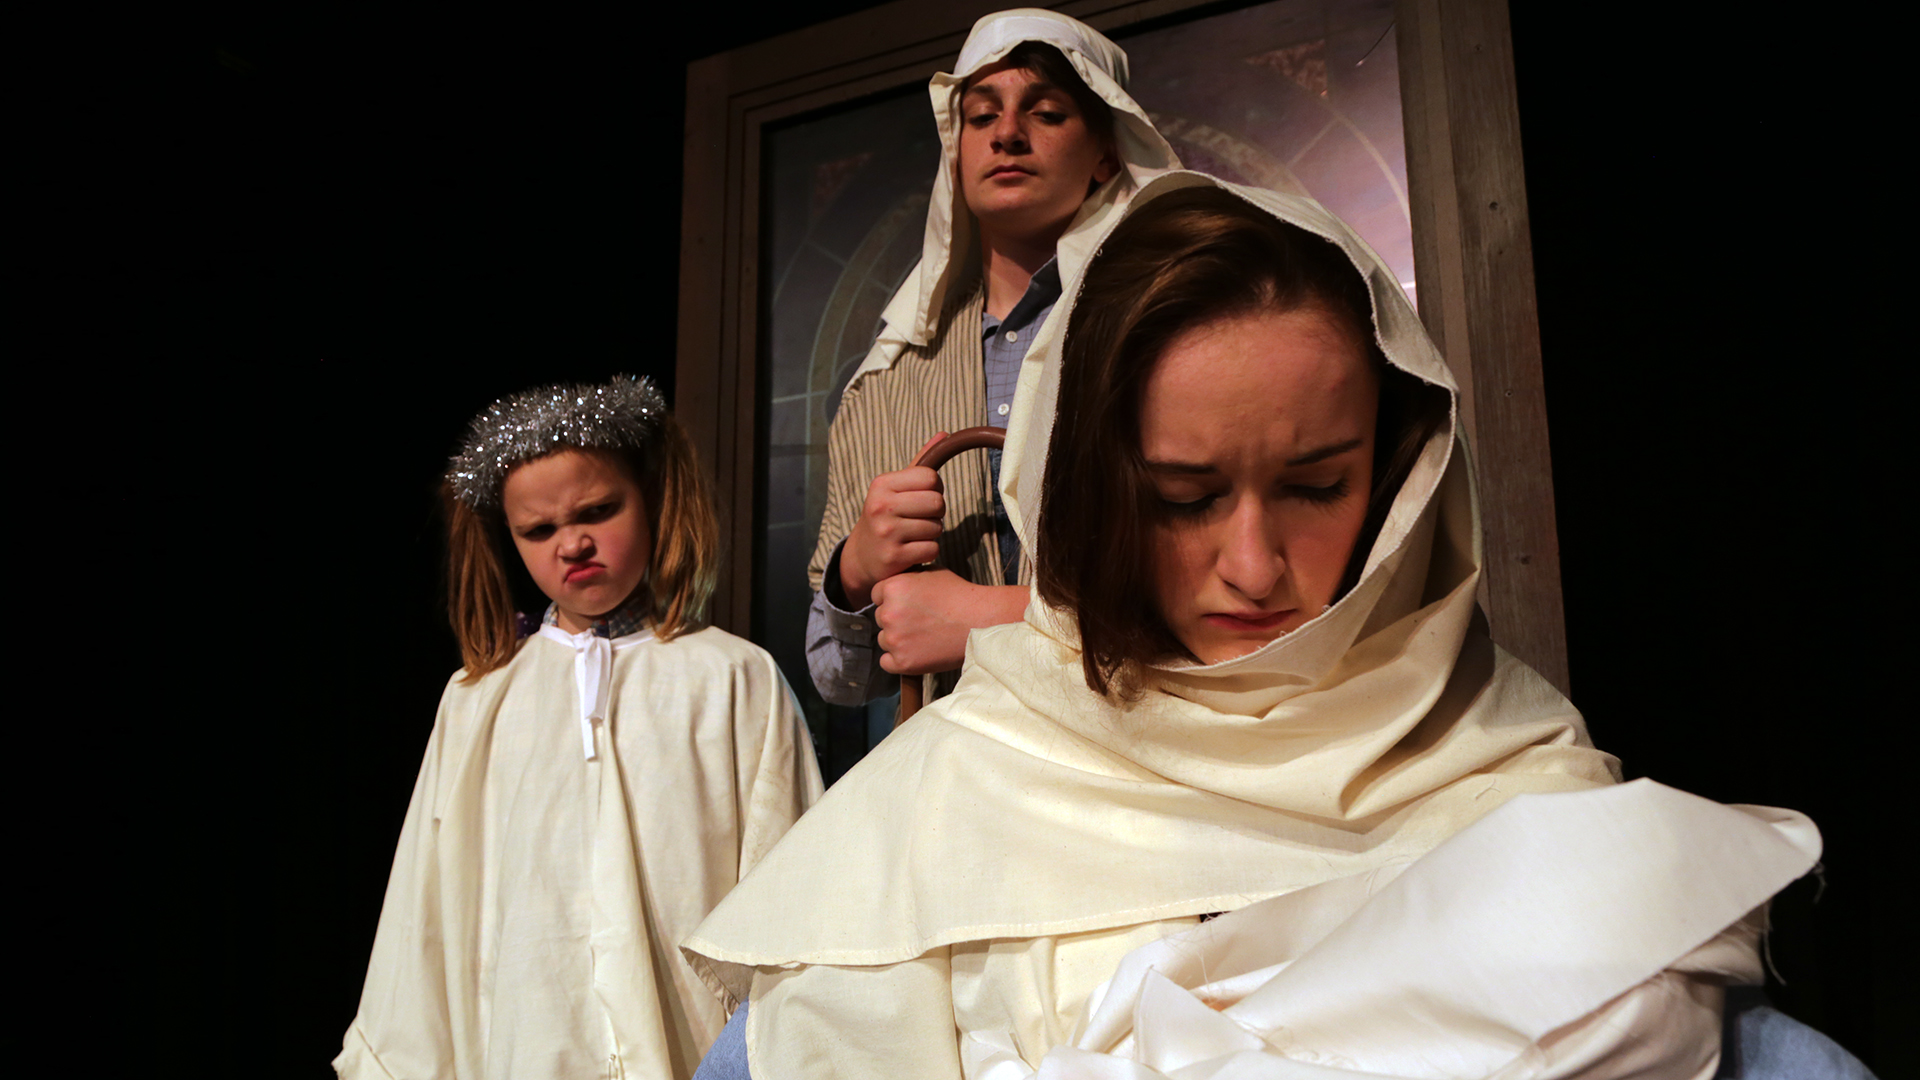 Play Here's Activity Roundup for Nov. 16 to 22, including Symphony, 'Best Christmas Pageant Ever,' 'Mullingar,' burlesque, more